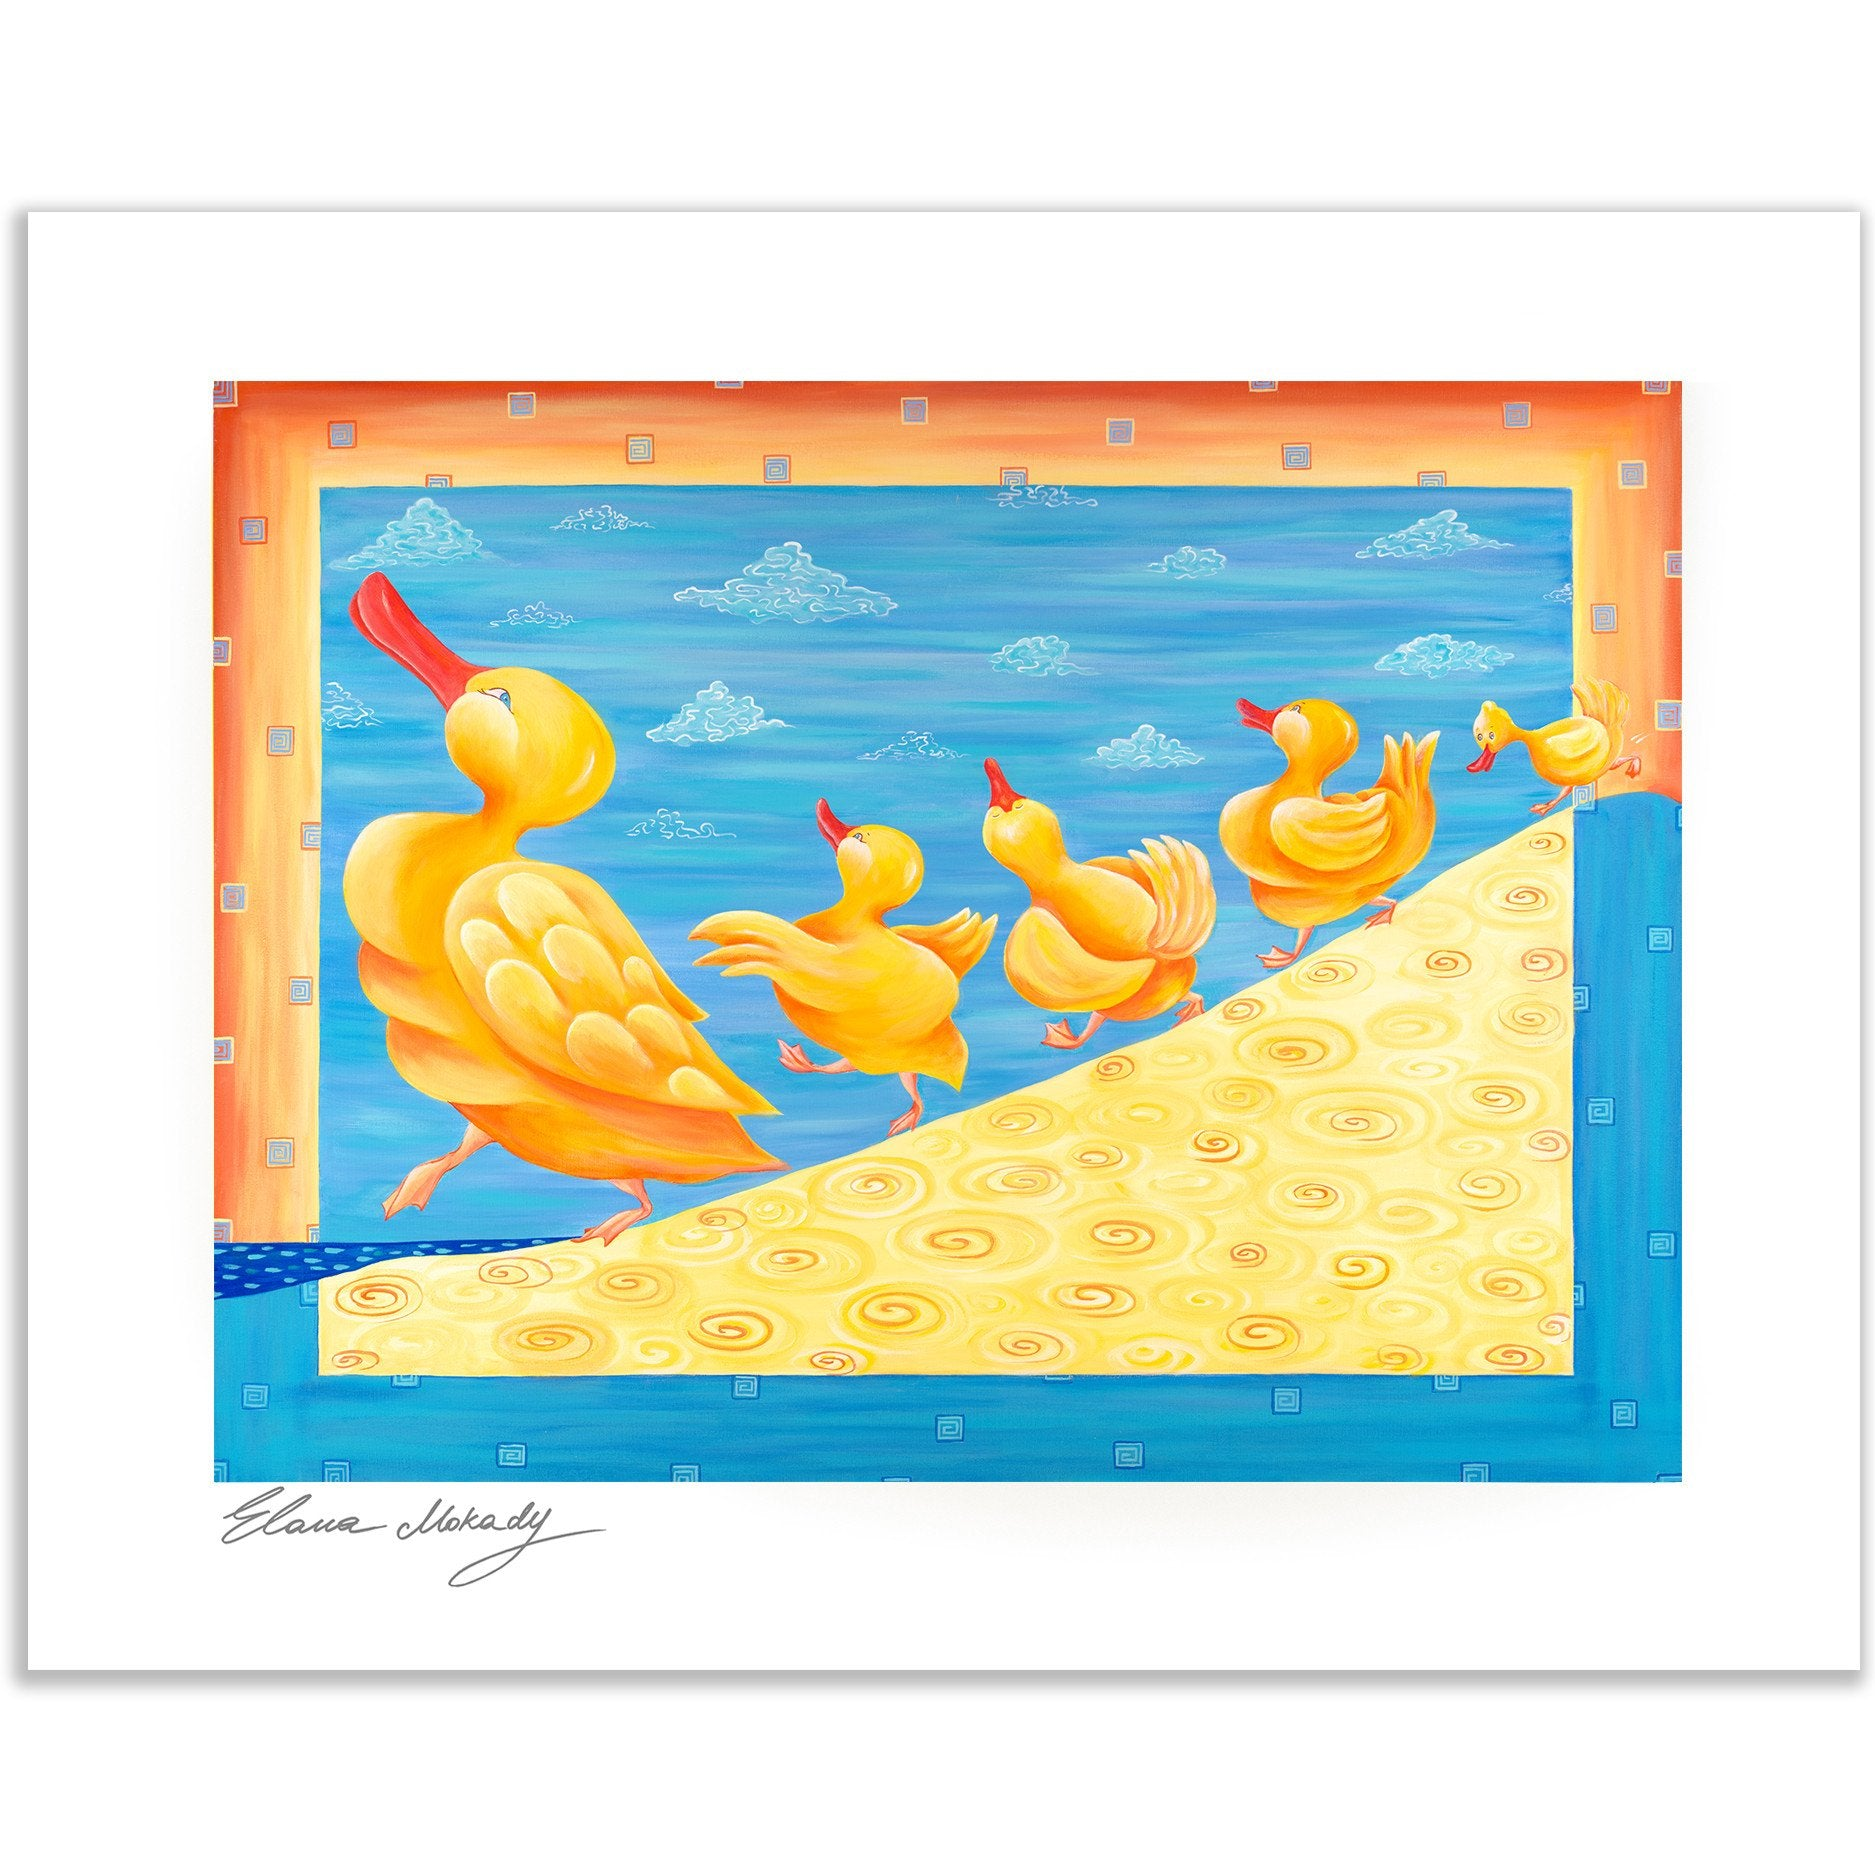 Dancing Ducks Paper Wall Art - Happy Art for Kids room | Elana ...